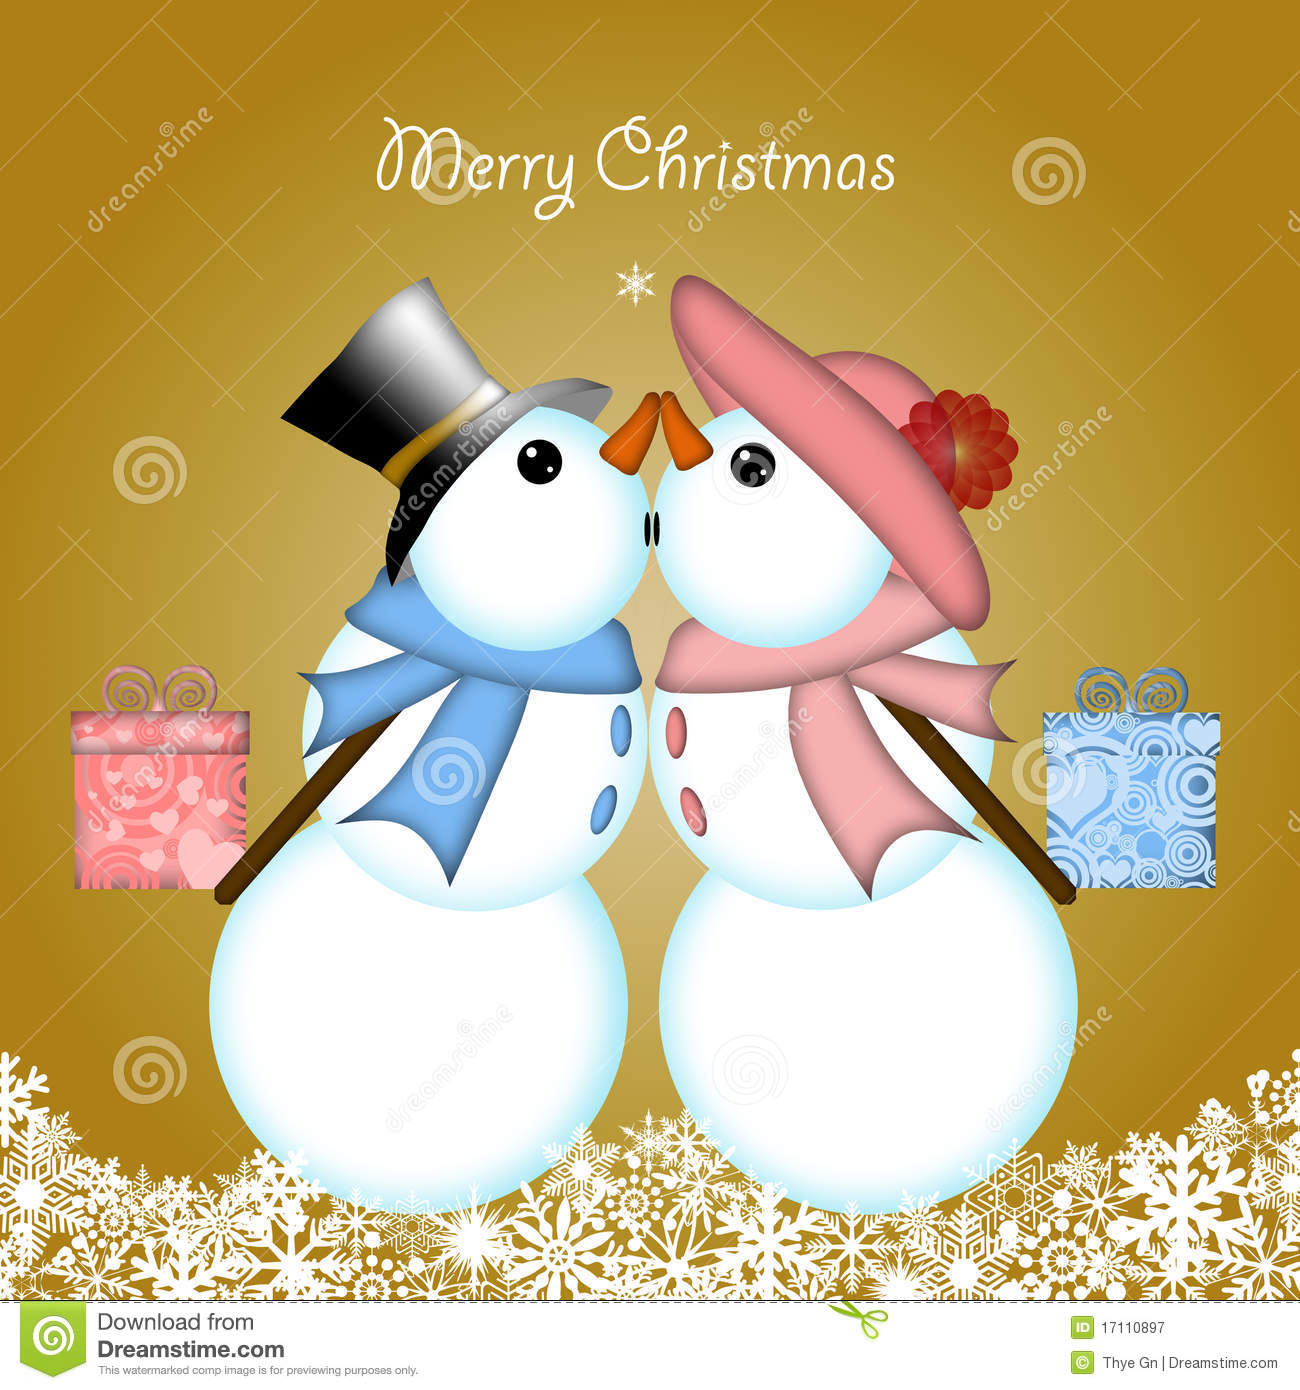 More similar stock images of ` Christmas Kissing Snowman Couple Giving ...